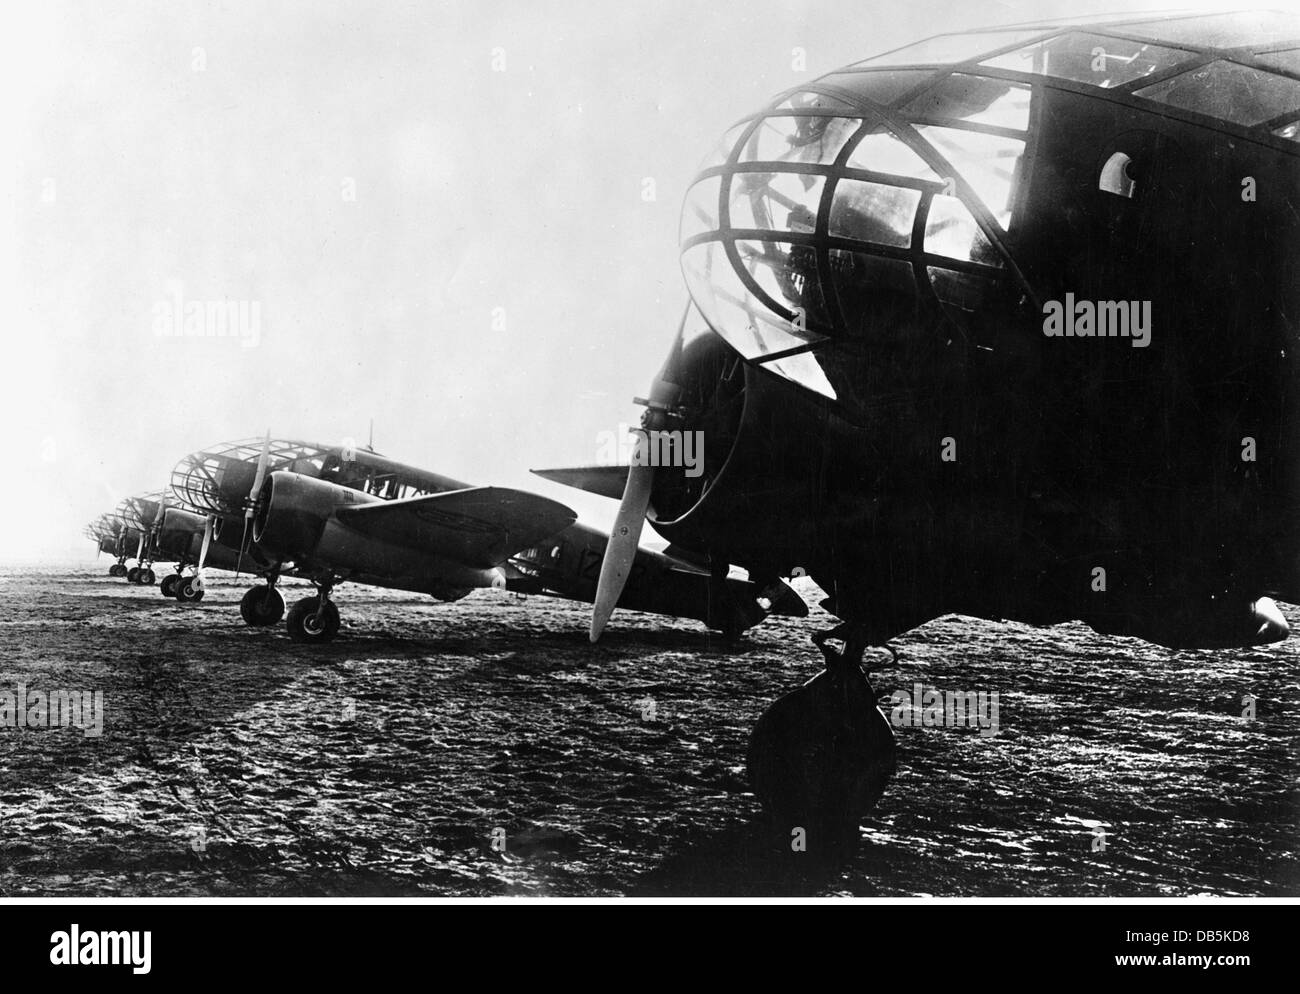 military, Italy, air force, Italian light bomber and reconnaissance aircraft Caproni Ca.311, circa 1940, Additional Stock Photo